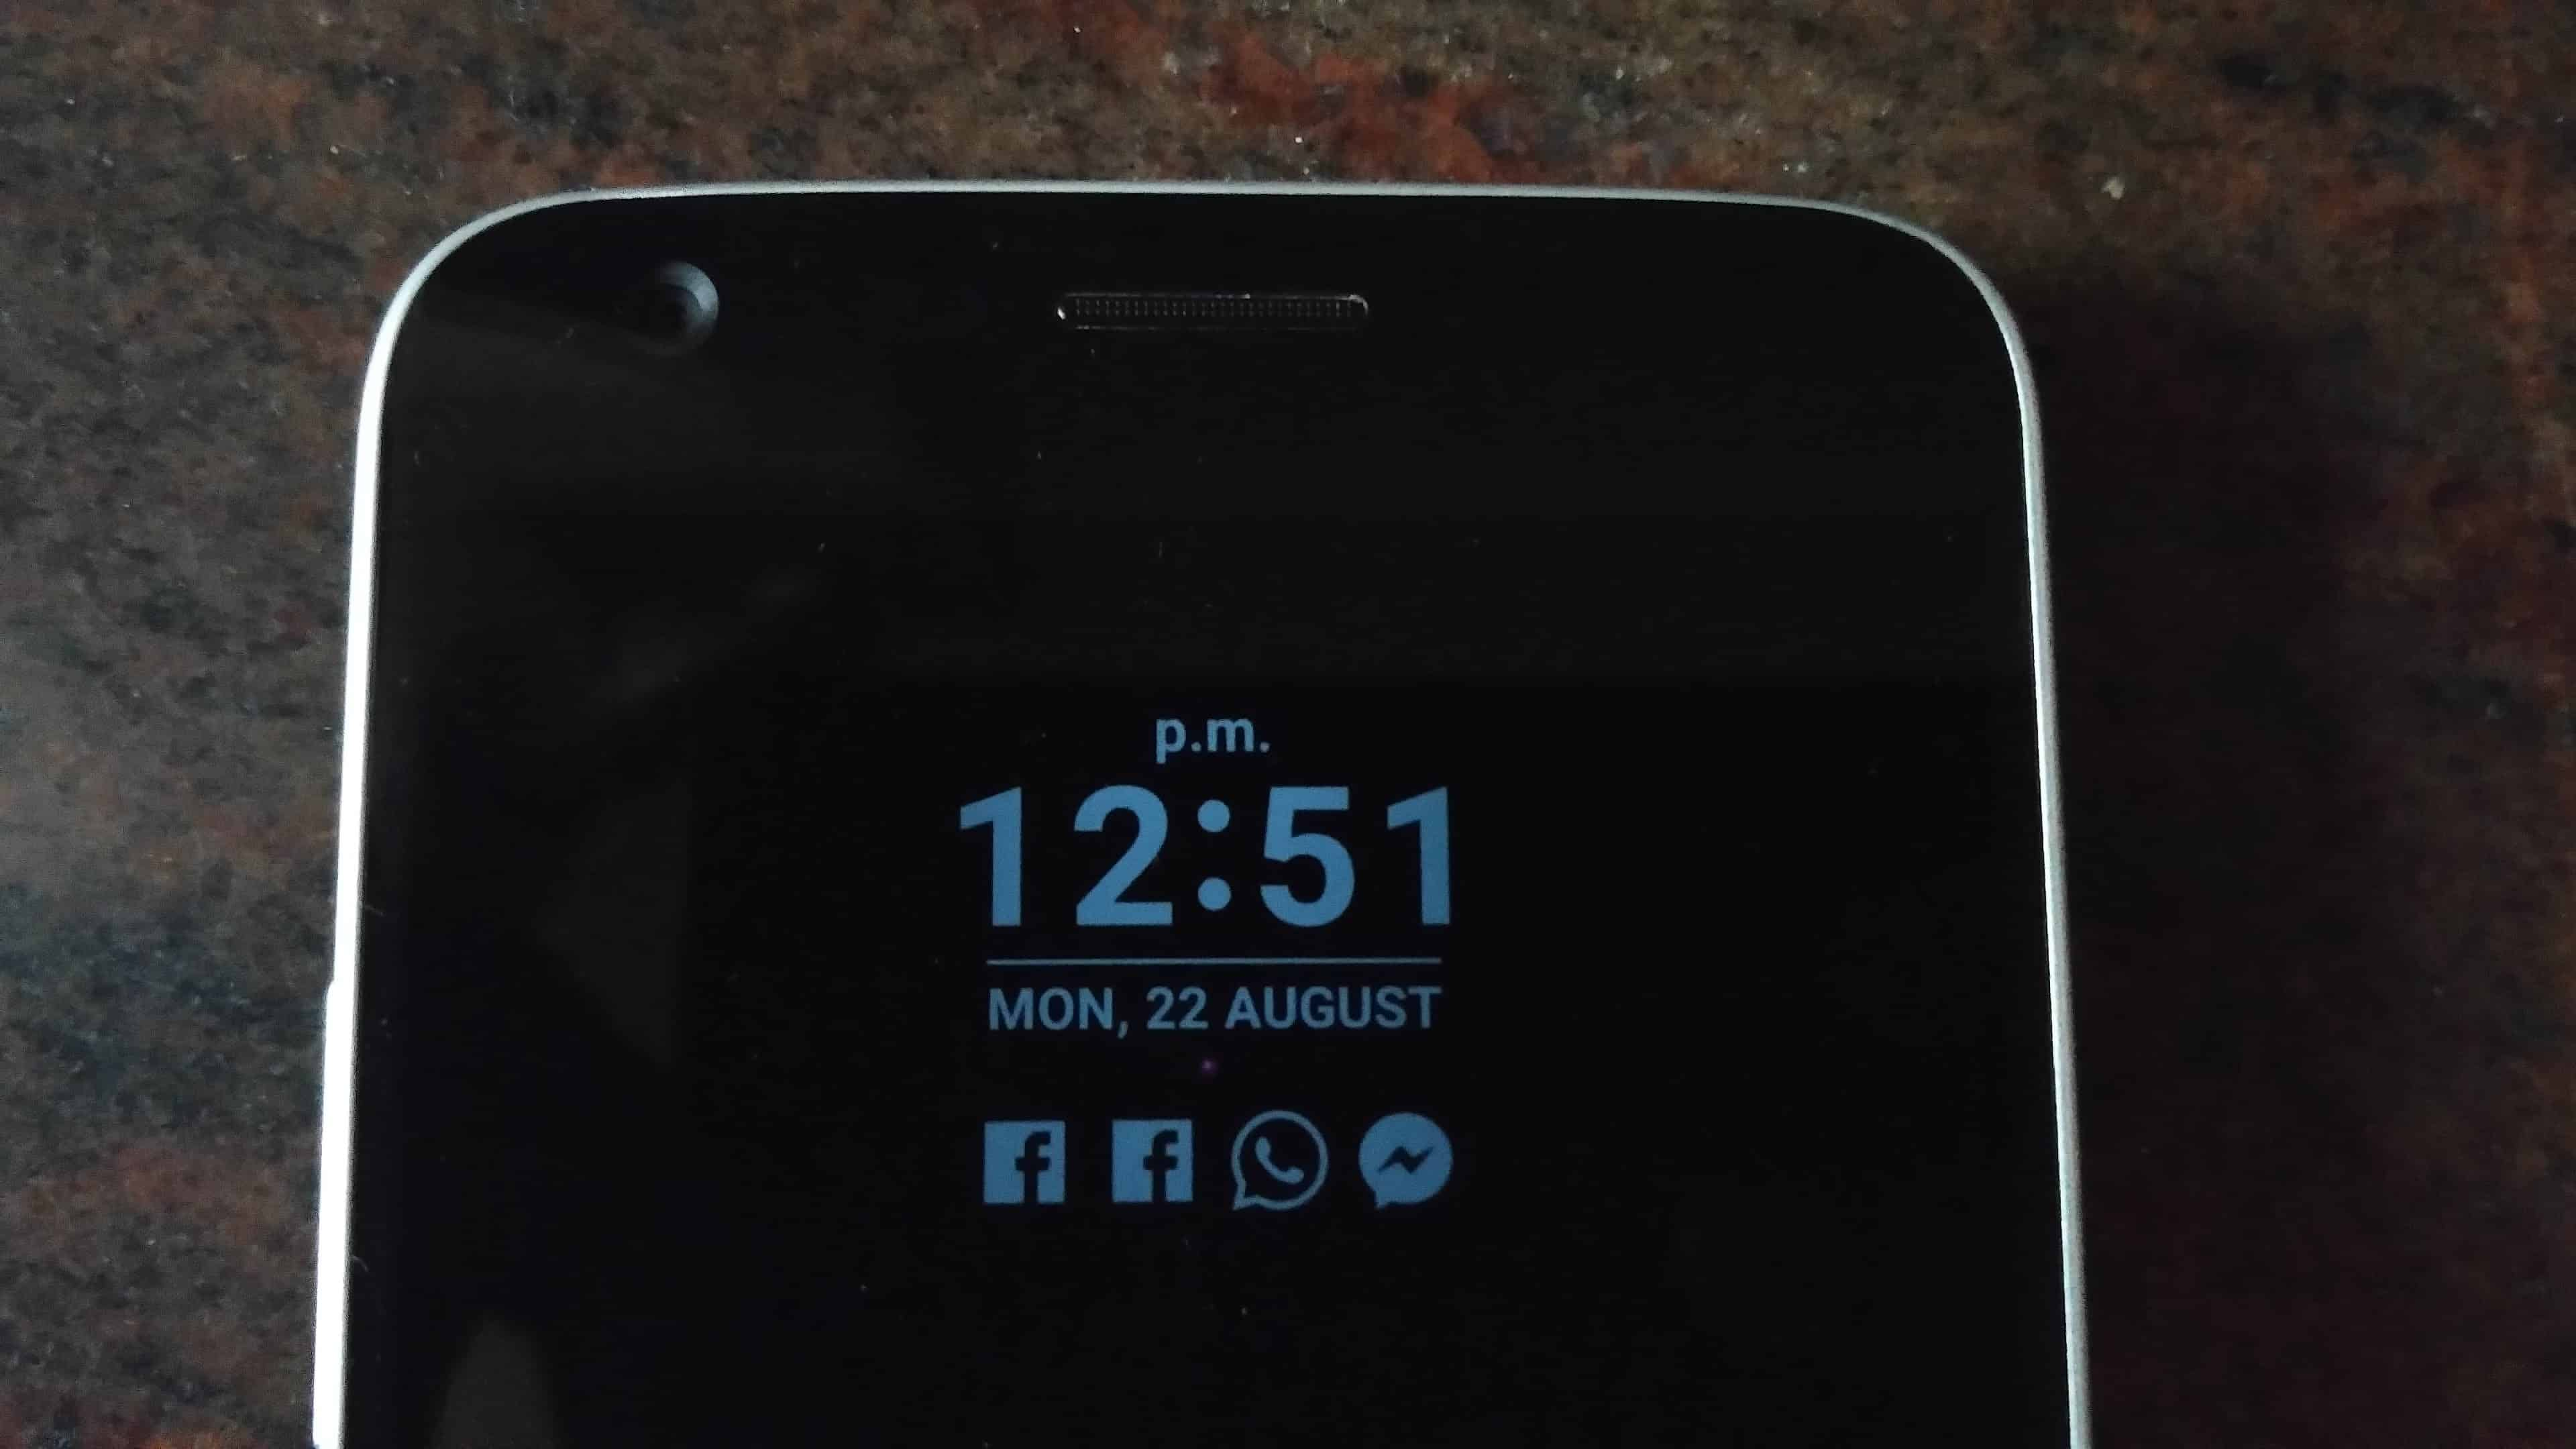 Closer Look to the Front Side of LG G5